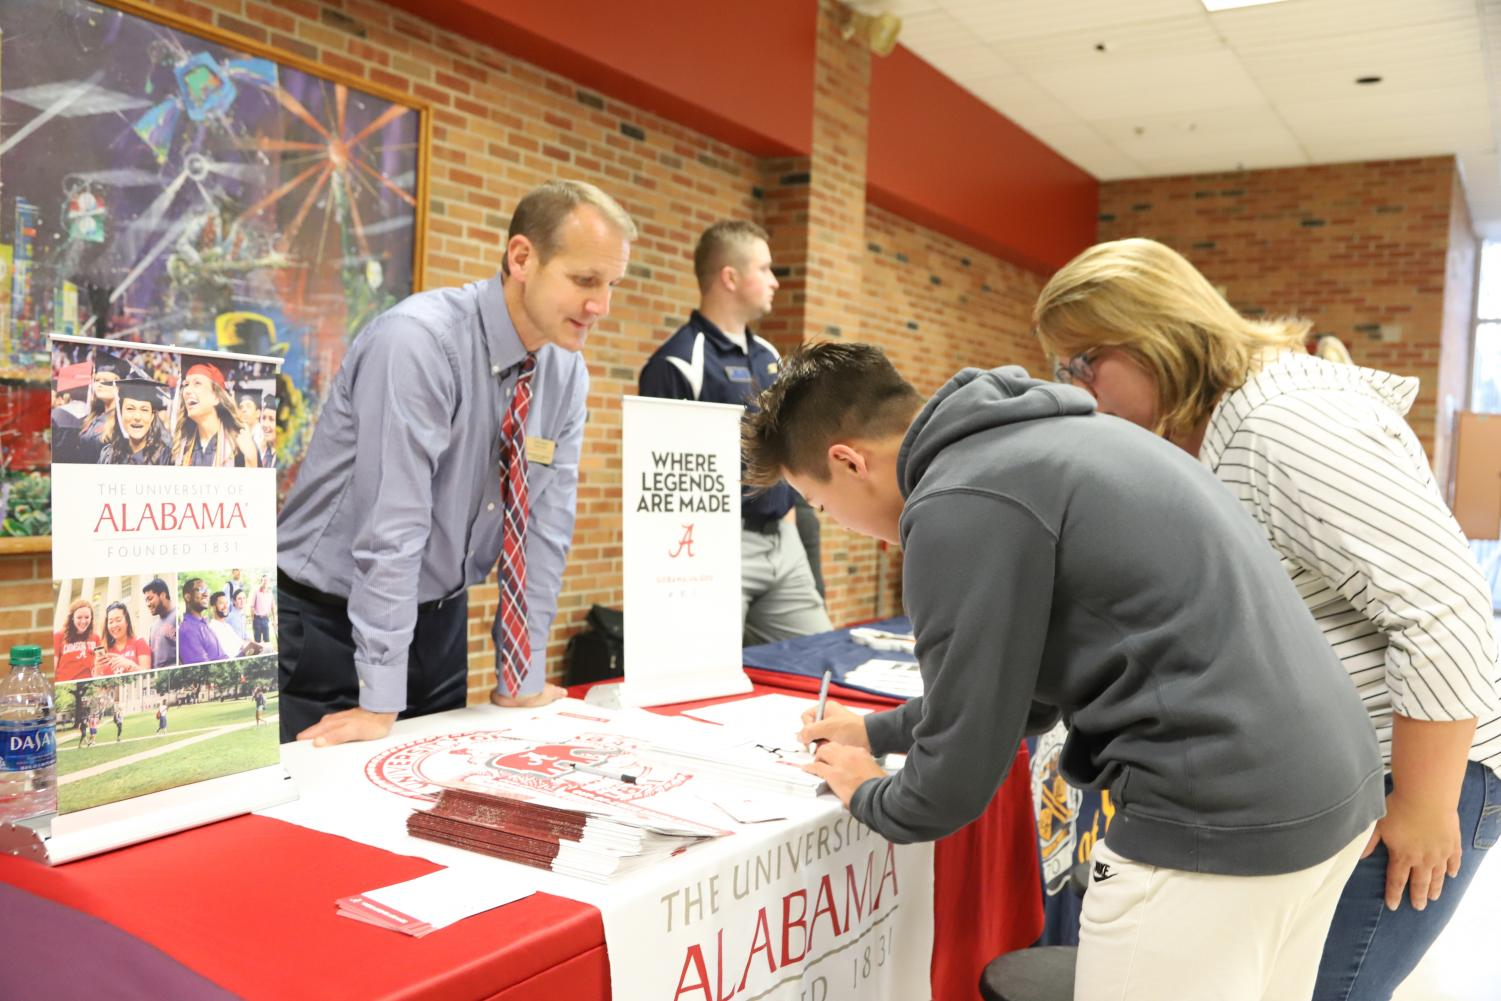 At the University of Alabama table, Ethan Lee (11) fills out his contact information so the school can talk to him again about future plans. Many colleges and universities met many with Brighton area students on College Night.